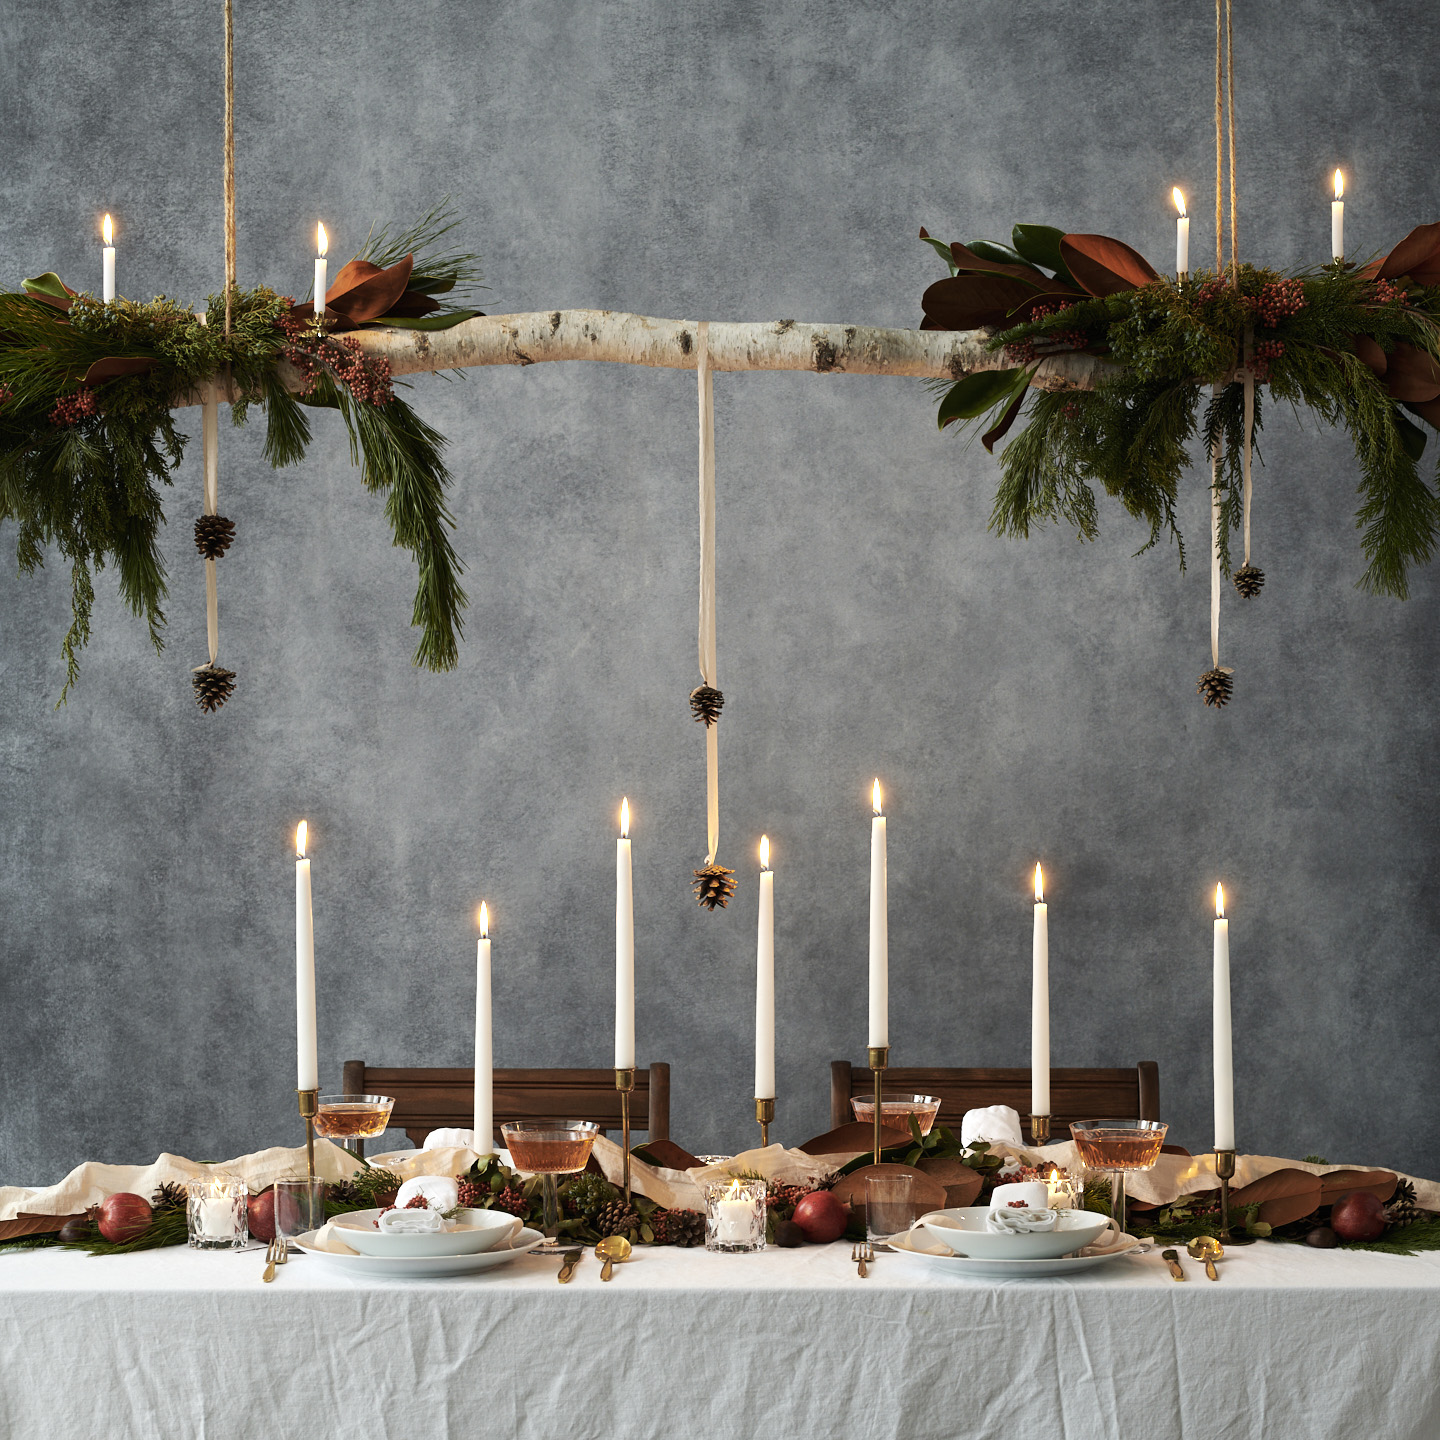 Christmas dinner country living magazine styled by Jessica Stewart Prop Stylist Specializing in food styling Imagery and set design, and conceptual art